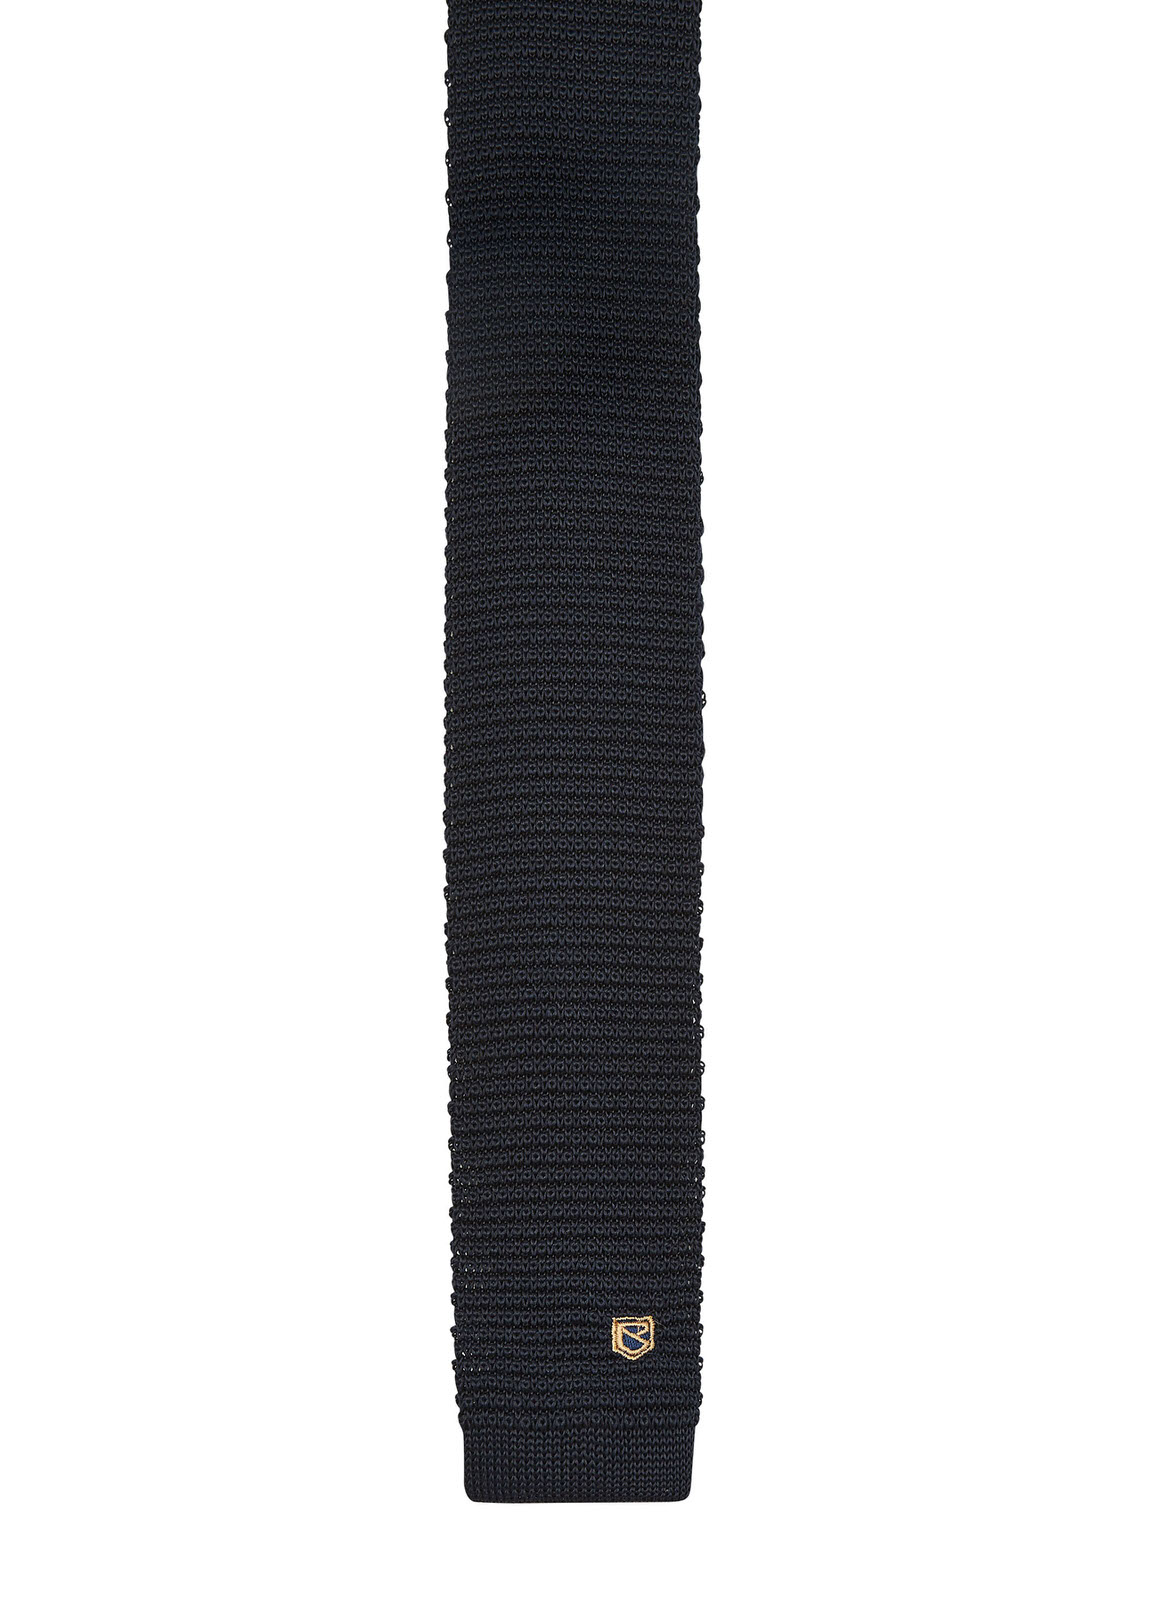 Knockroe_Knitted_Tie_Navy_Image_1